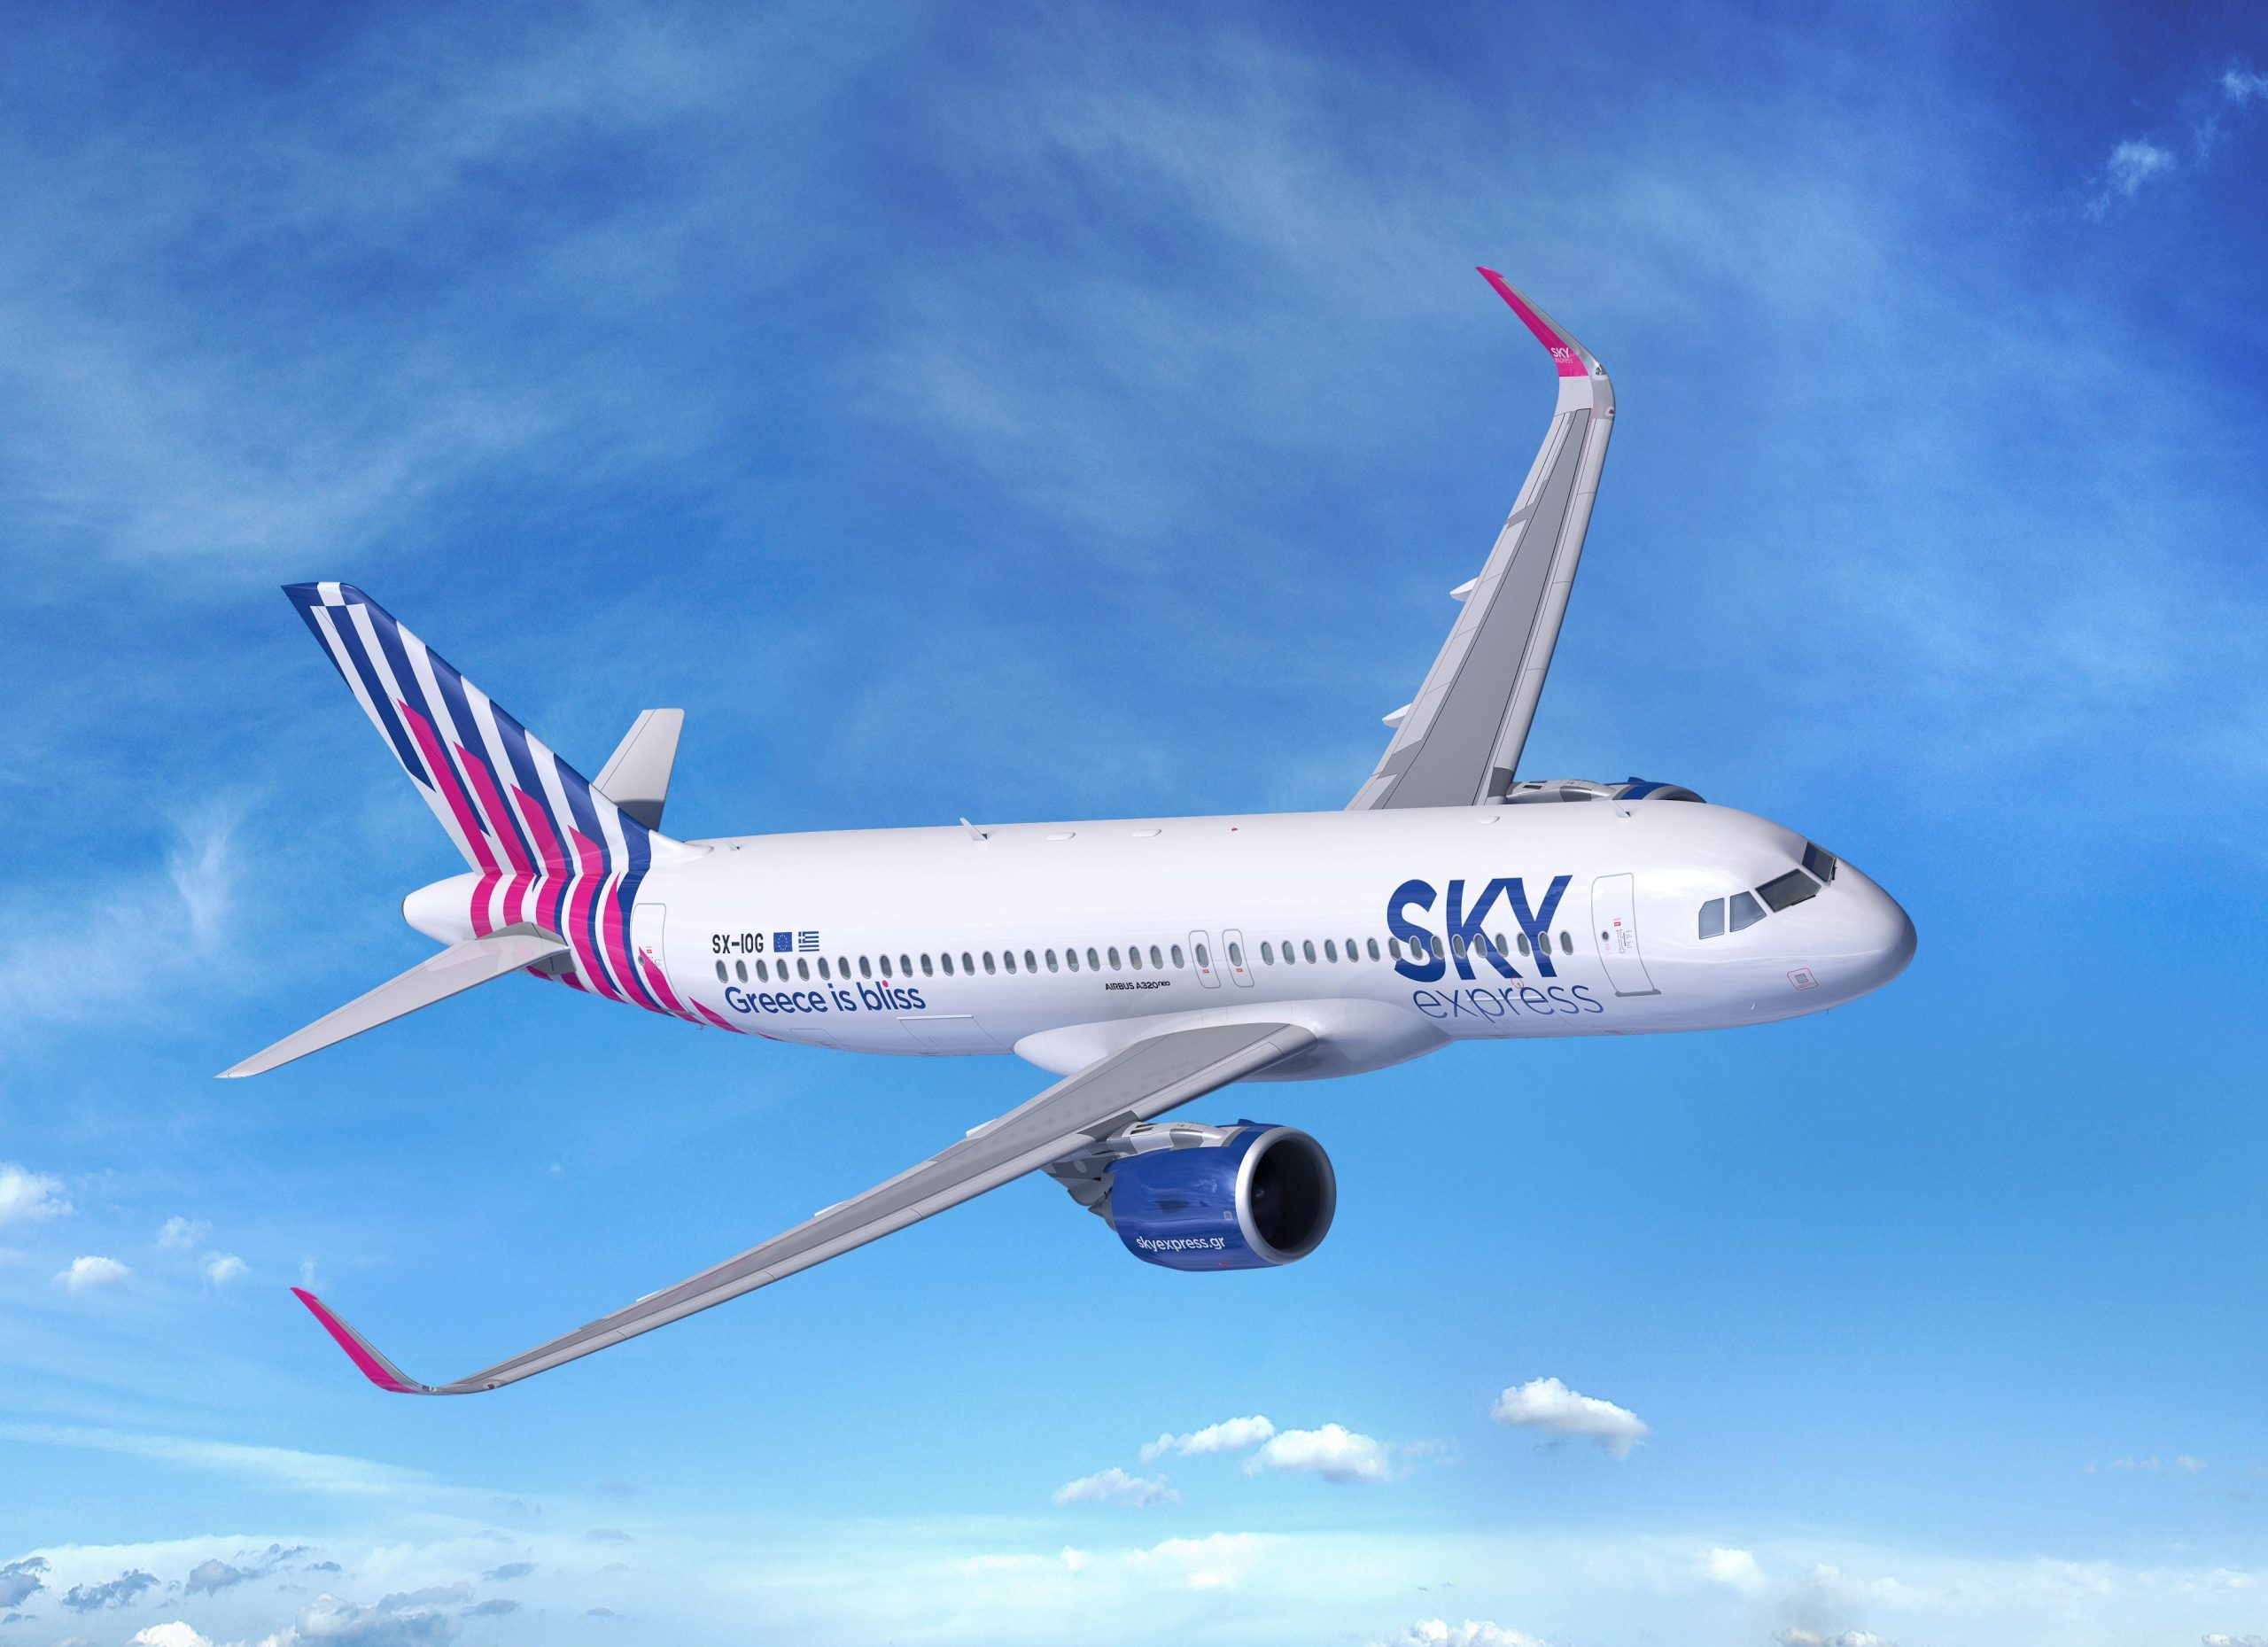 Airbus A320-200neo fra SKY express. (Airbus | FIXION by Dreamstime)